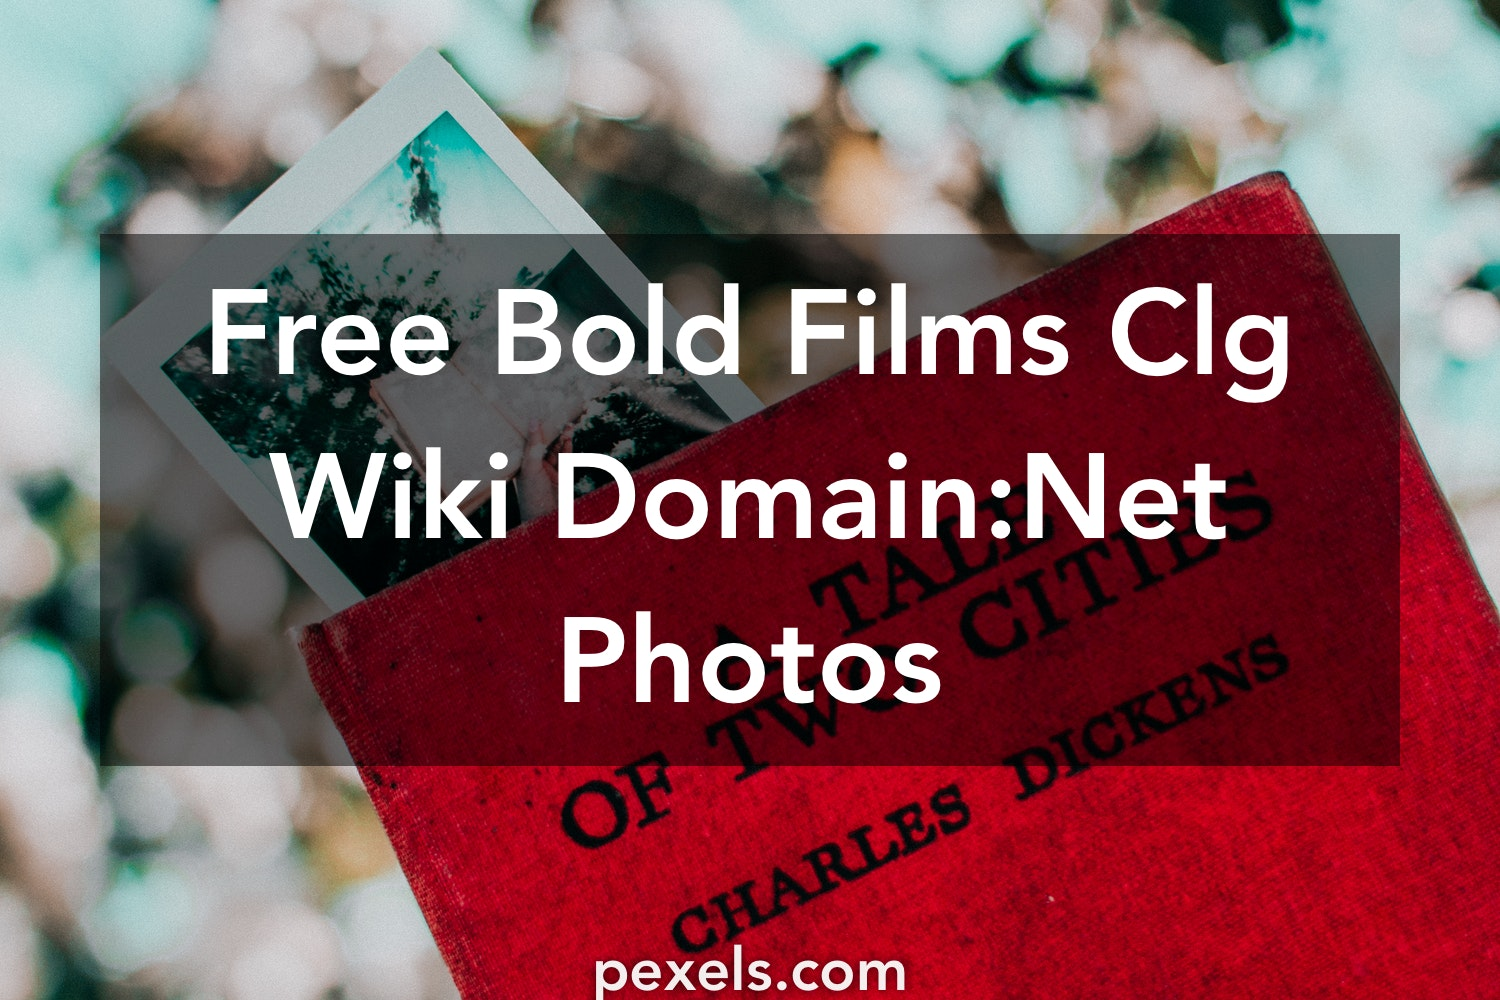 100+ Amazing Bold Films Clg Wiki Domain:Net Photos · Pexels